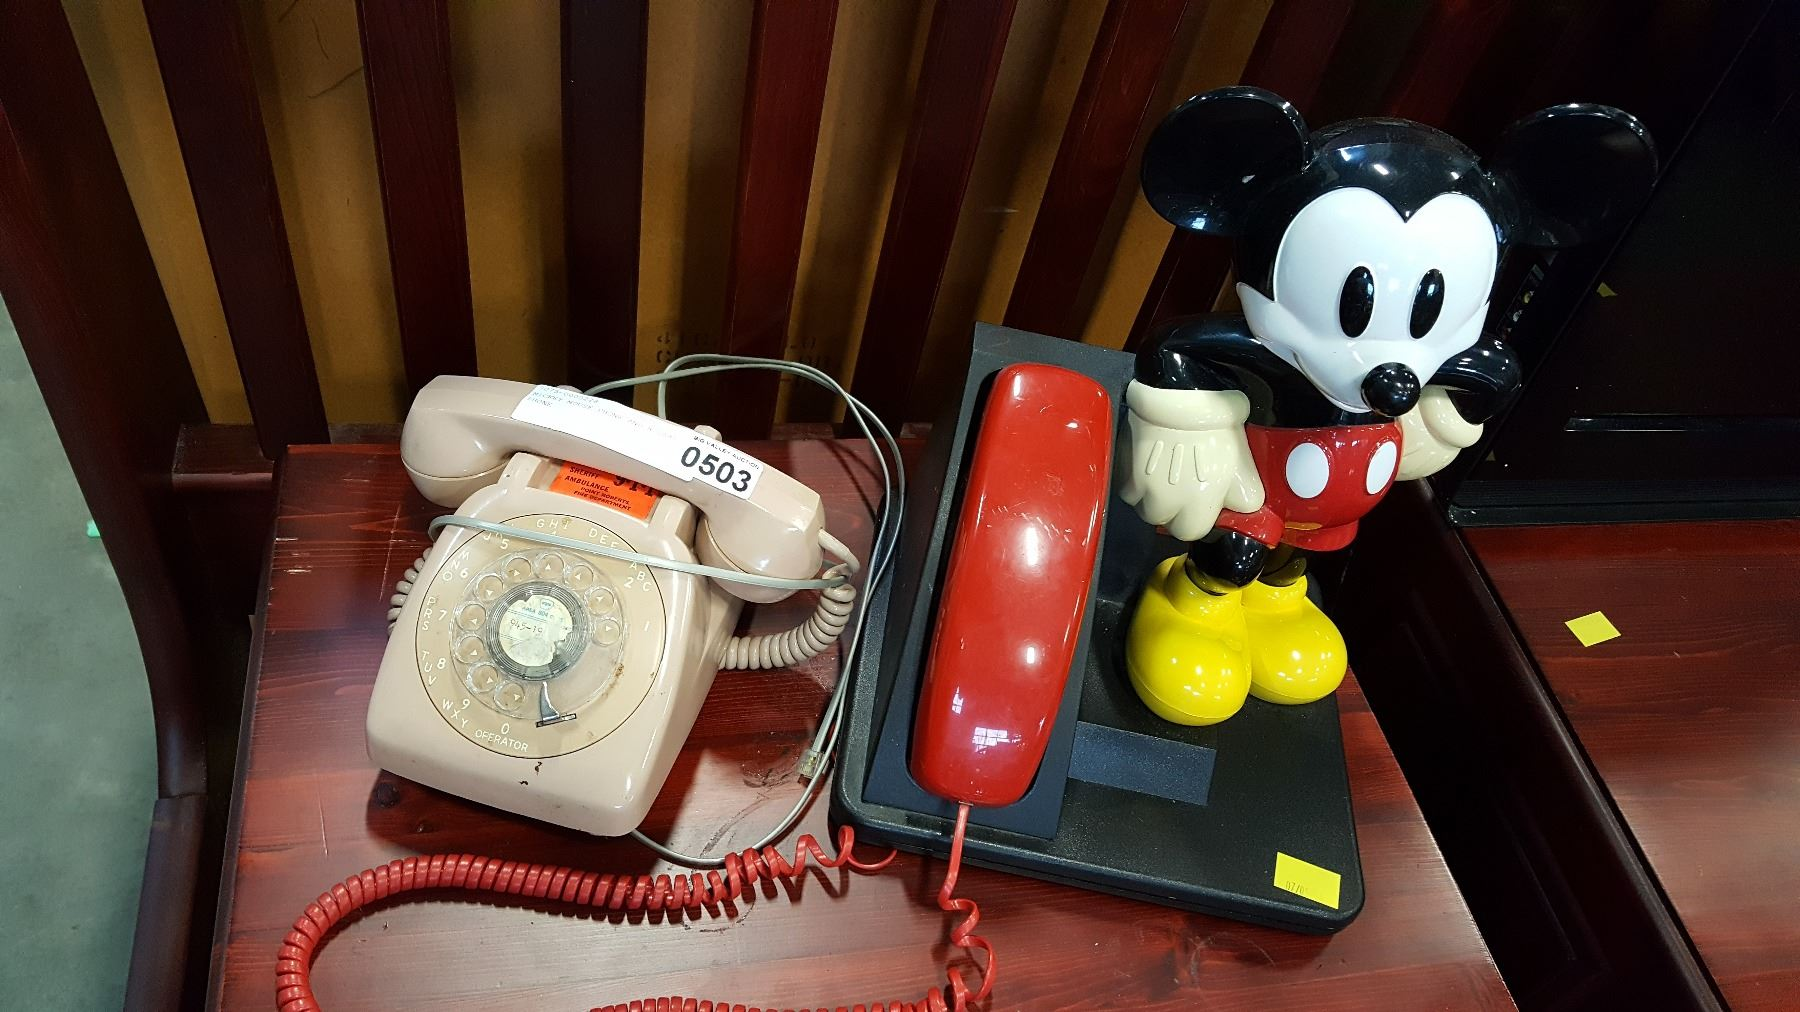 image 1 mickey mouse phone and rotary phone  [ 1800 x 1012 Pixel ]